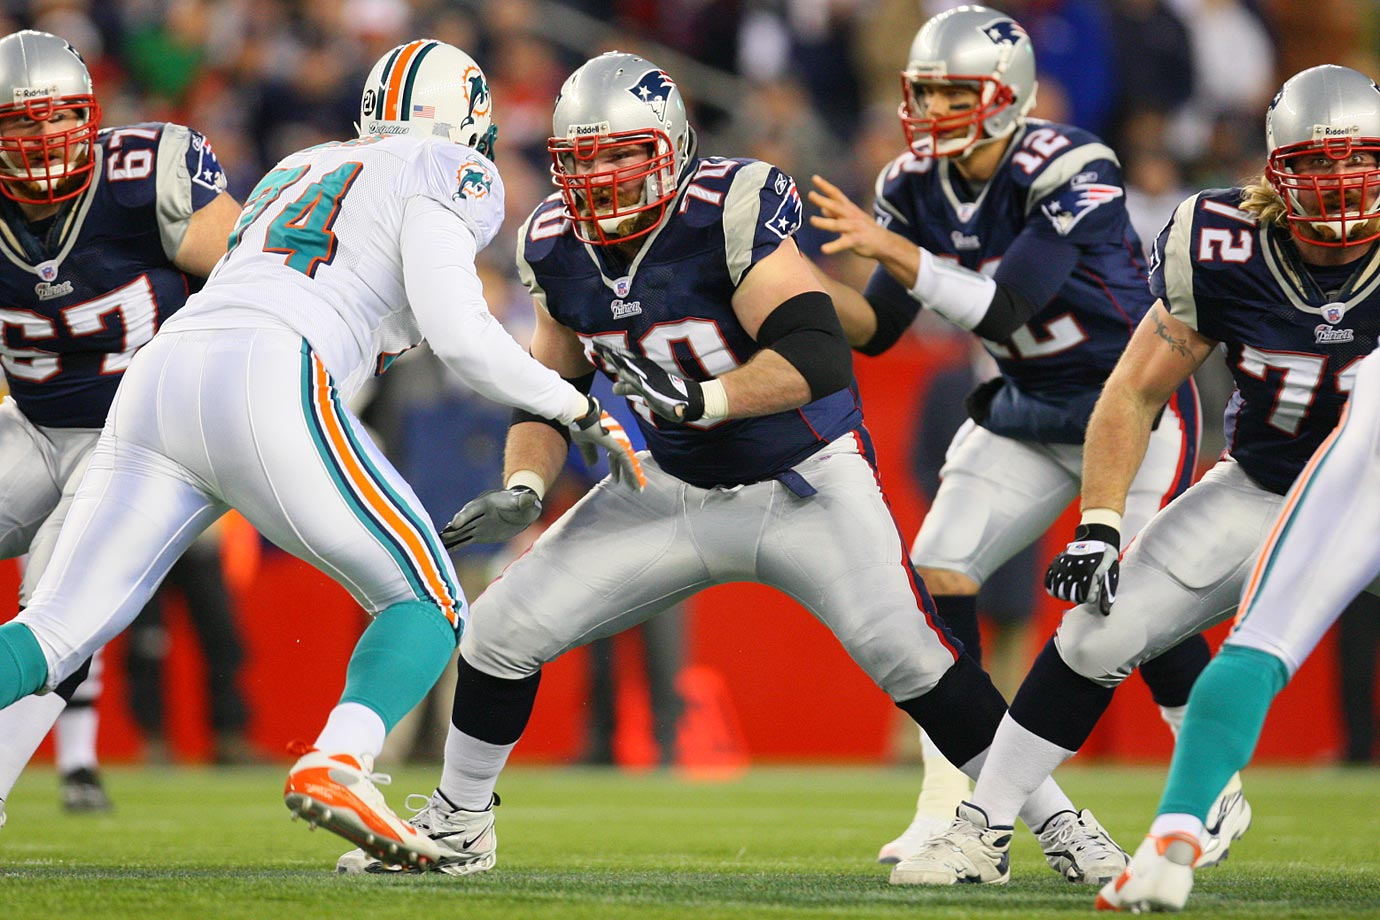 Teams hope they can find contributors at the bottom of the draft's first round. New England landed itself quite the gem in Mankins back in 2005. His Credentials: 161 career regular-season starts, seven Pro Bowl trips and six All-Pro selections, voted to Patriots' 50th anniversary team in 2009, two Super Bowl appearances. Others in Consideration: Ben Watson (2004, Patriots); Mathias Kiwanuka (2006, Giants)